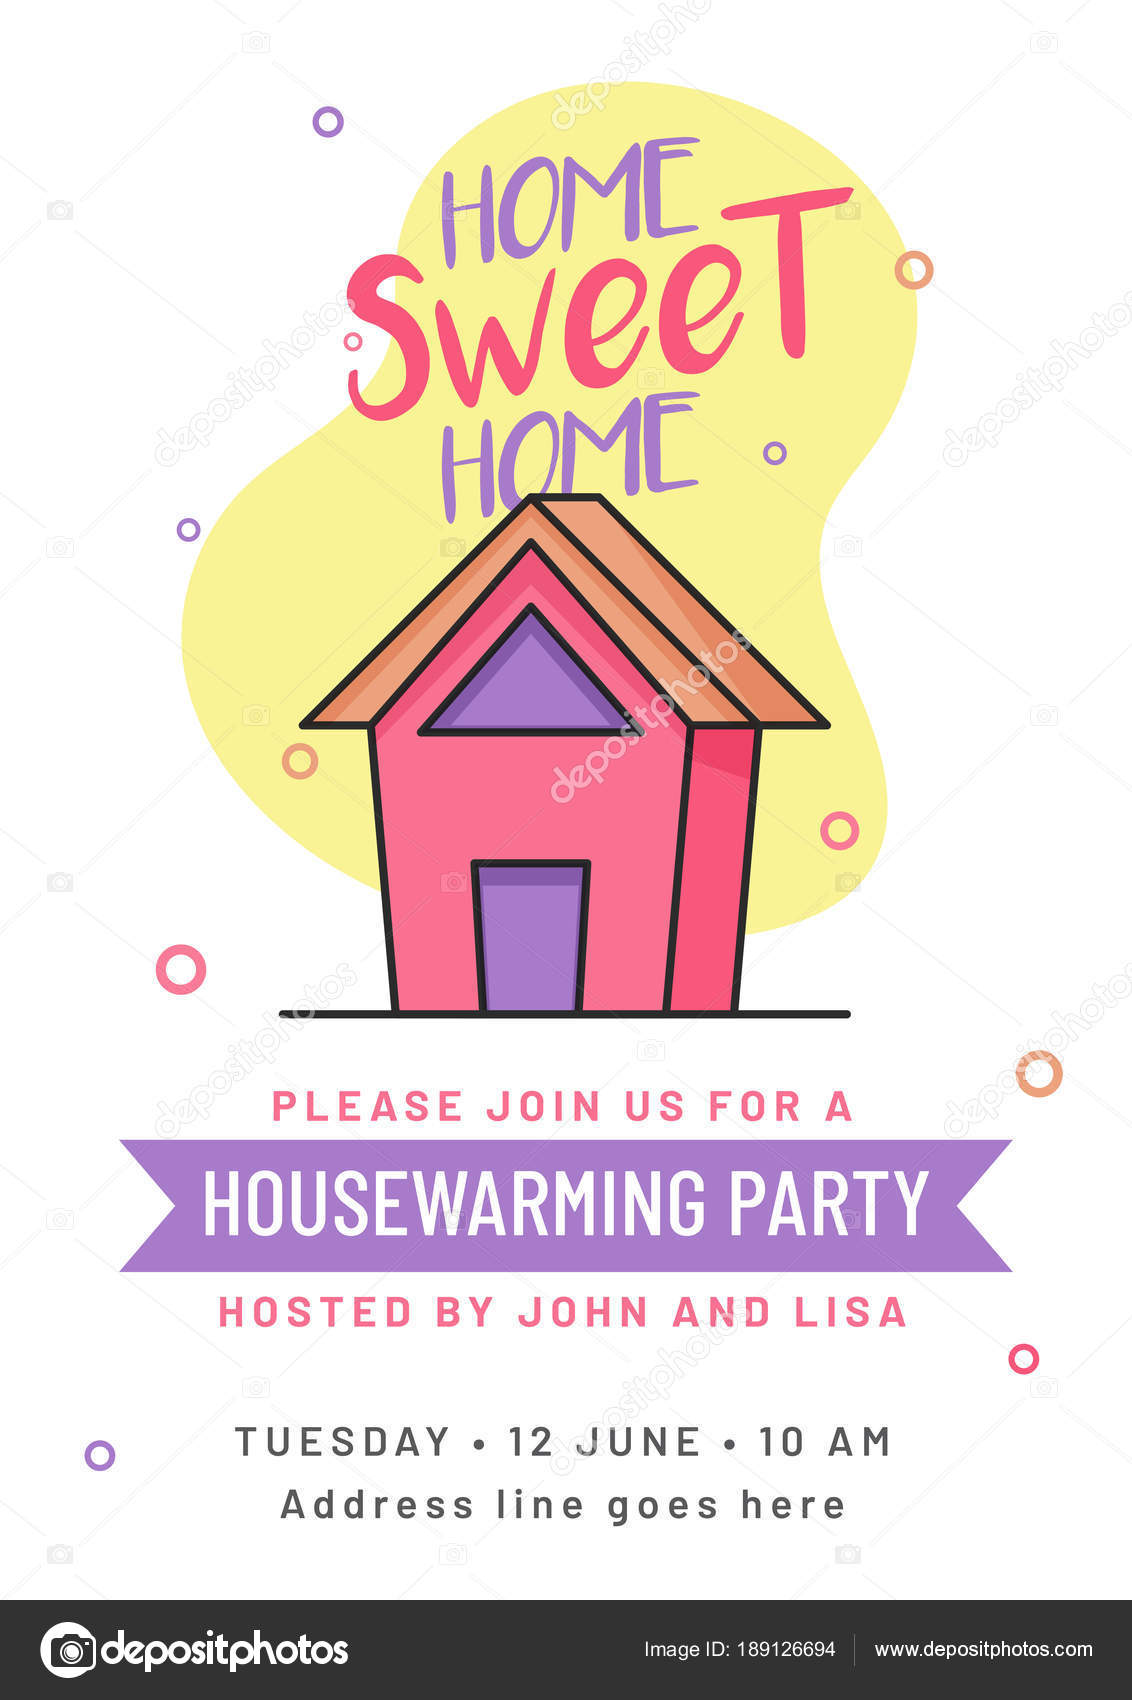 Housewarming party invitation card design stock vector housewarming party invitation card design stock vector stopboris Gallery